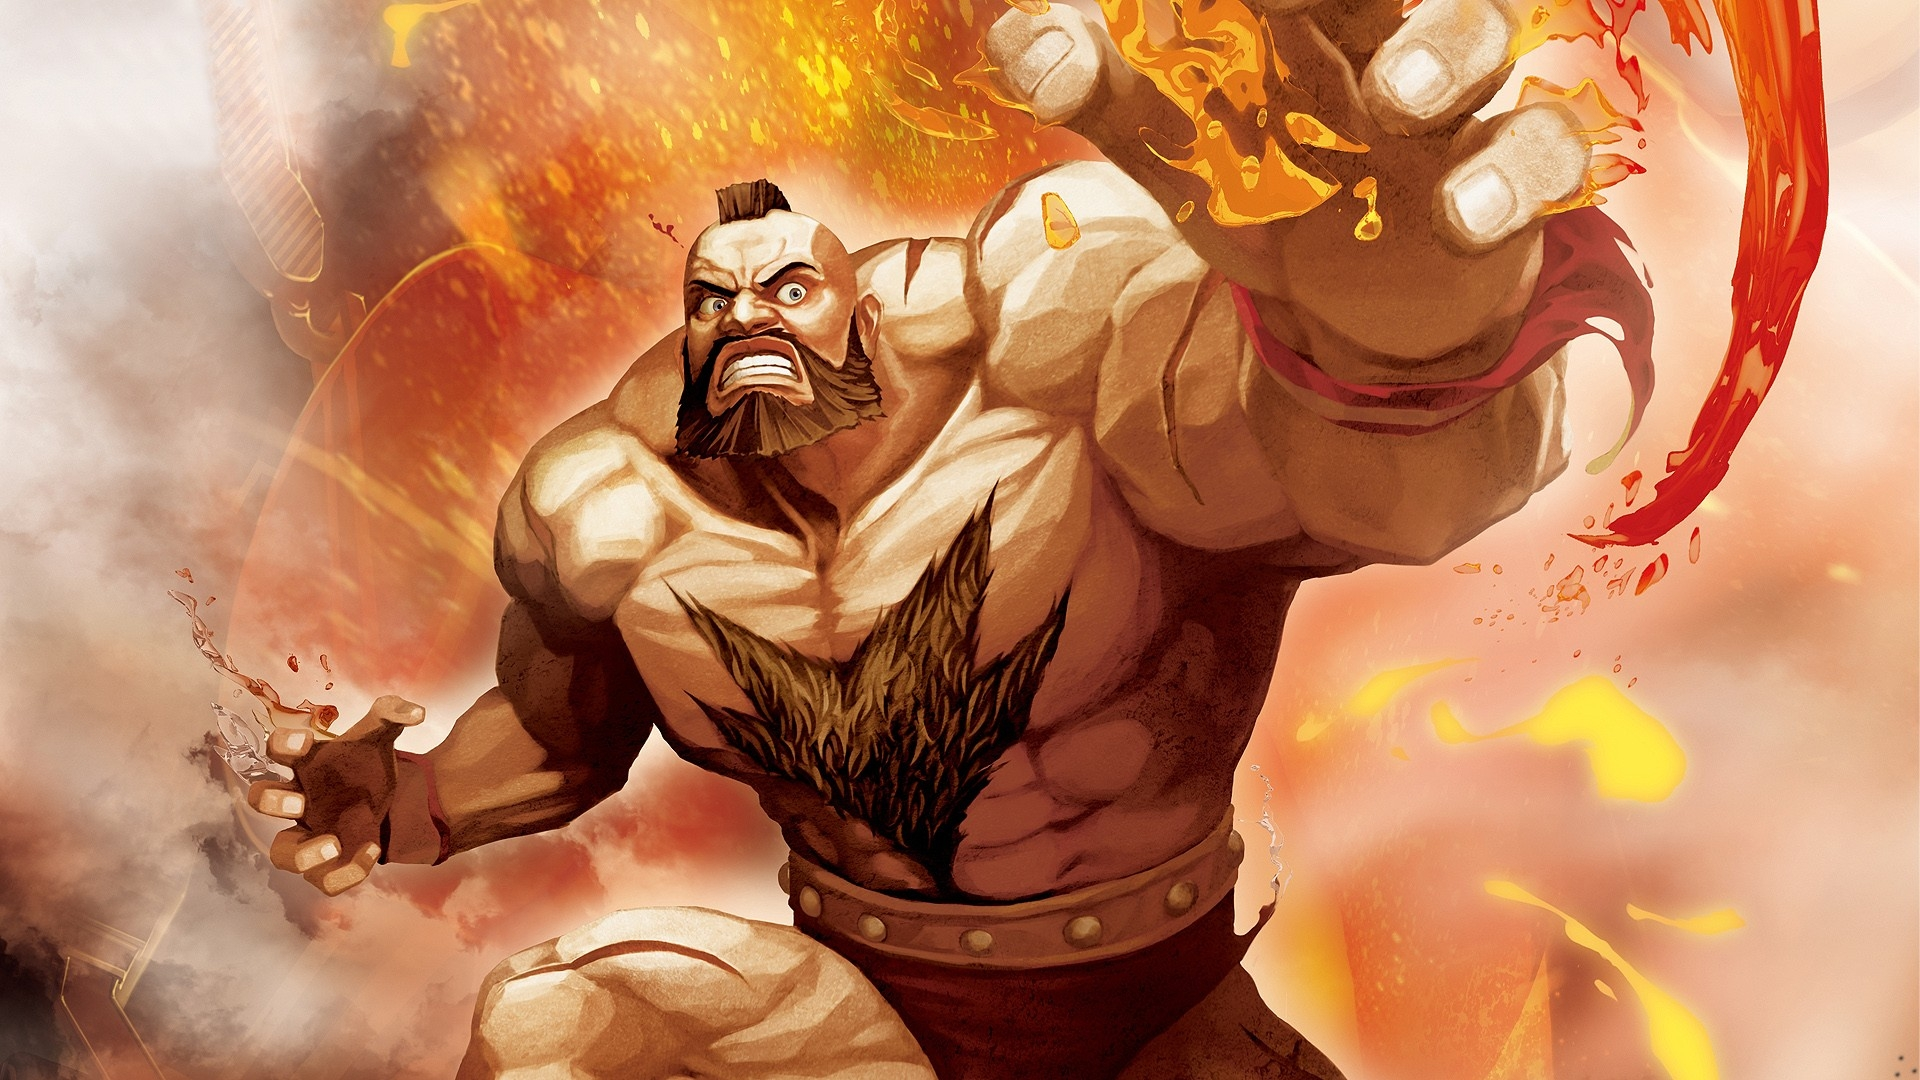 Street Fighter X Tekken Zangief Fighter Wallpaper Hd Games 4k